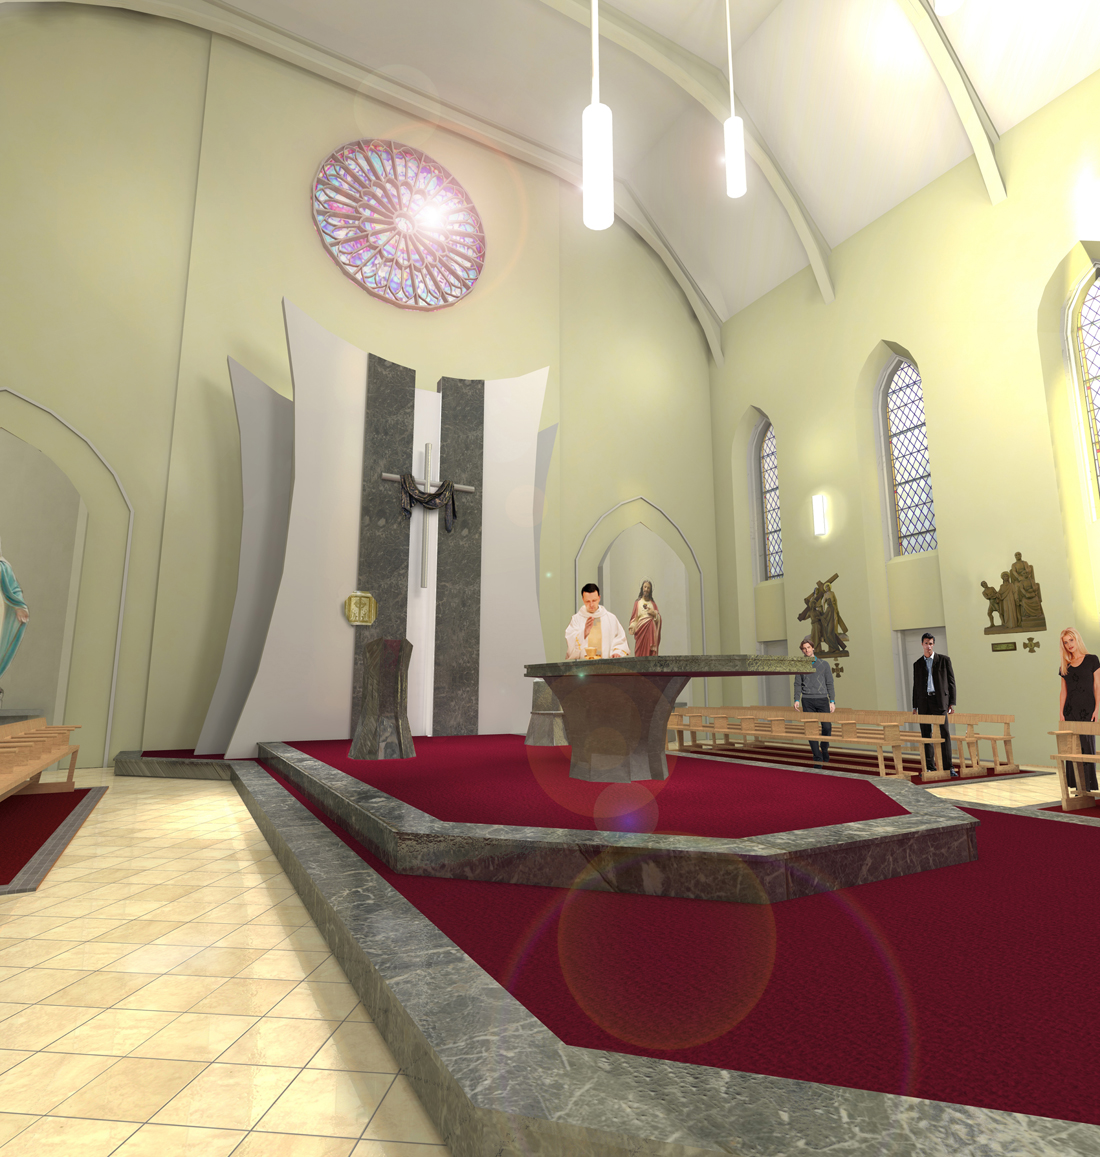 allenwood revised interior_altar perspective_low